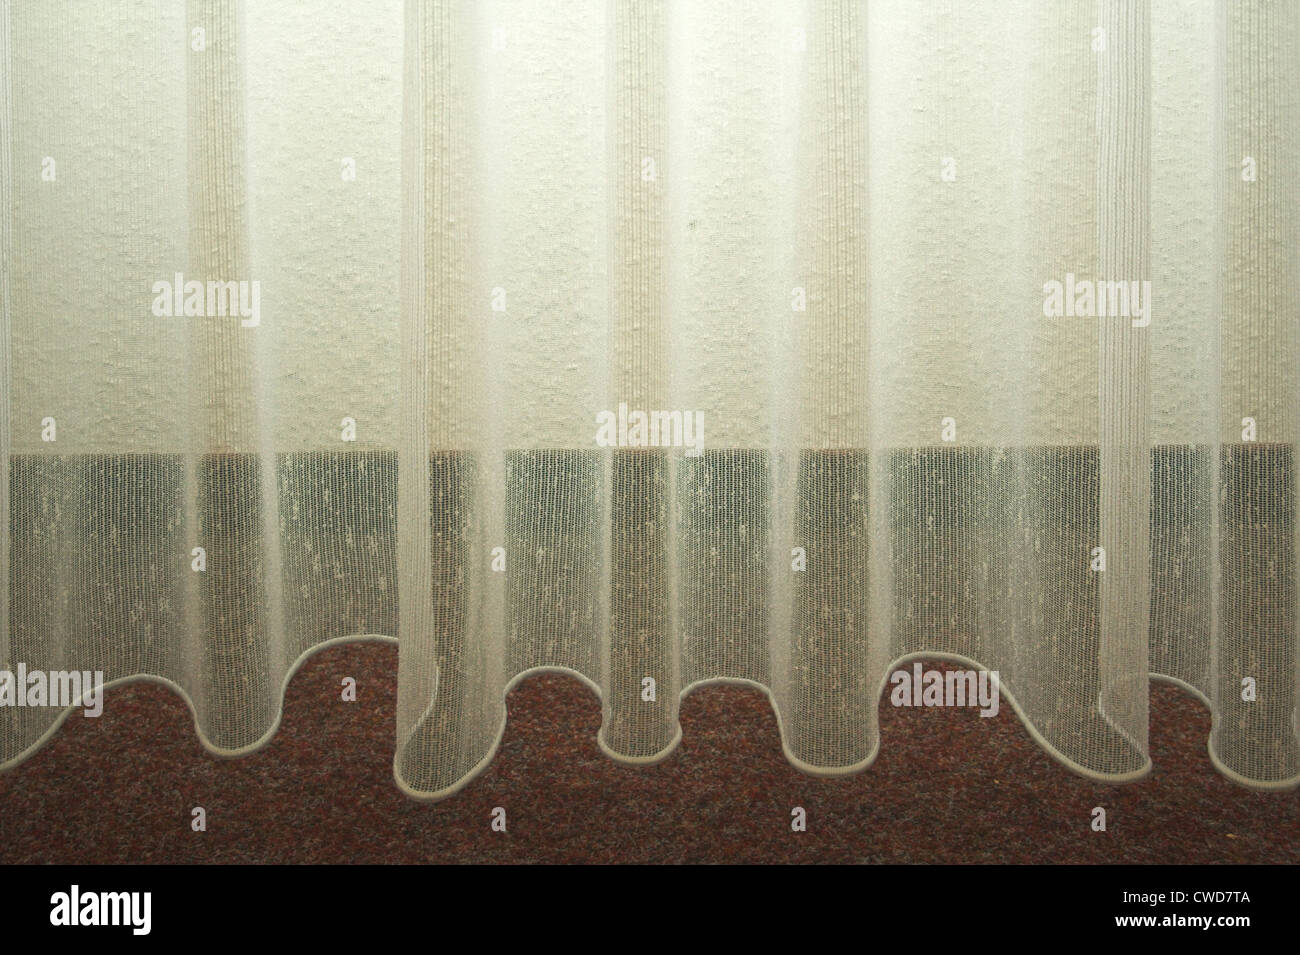 backgrounds,curtain,curtain - Stock Image